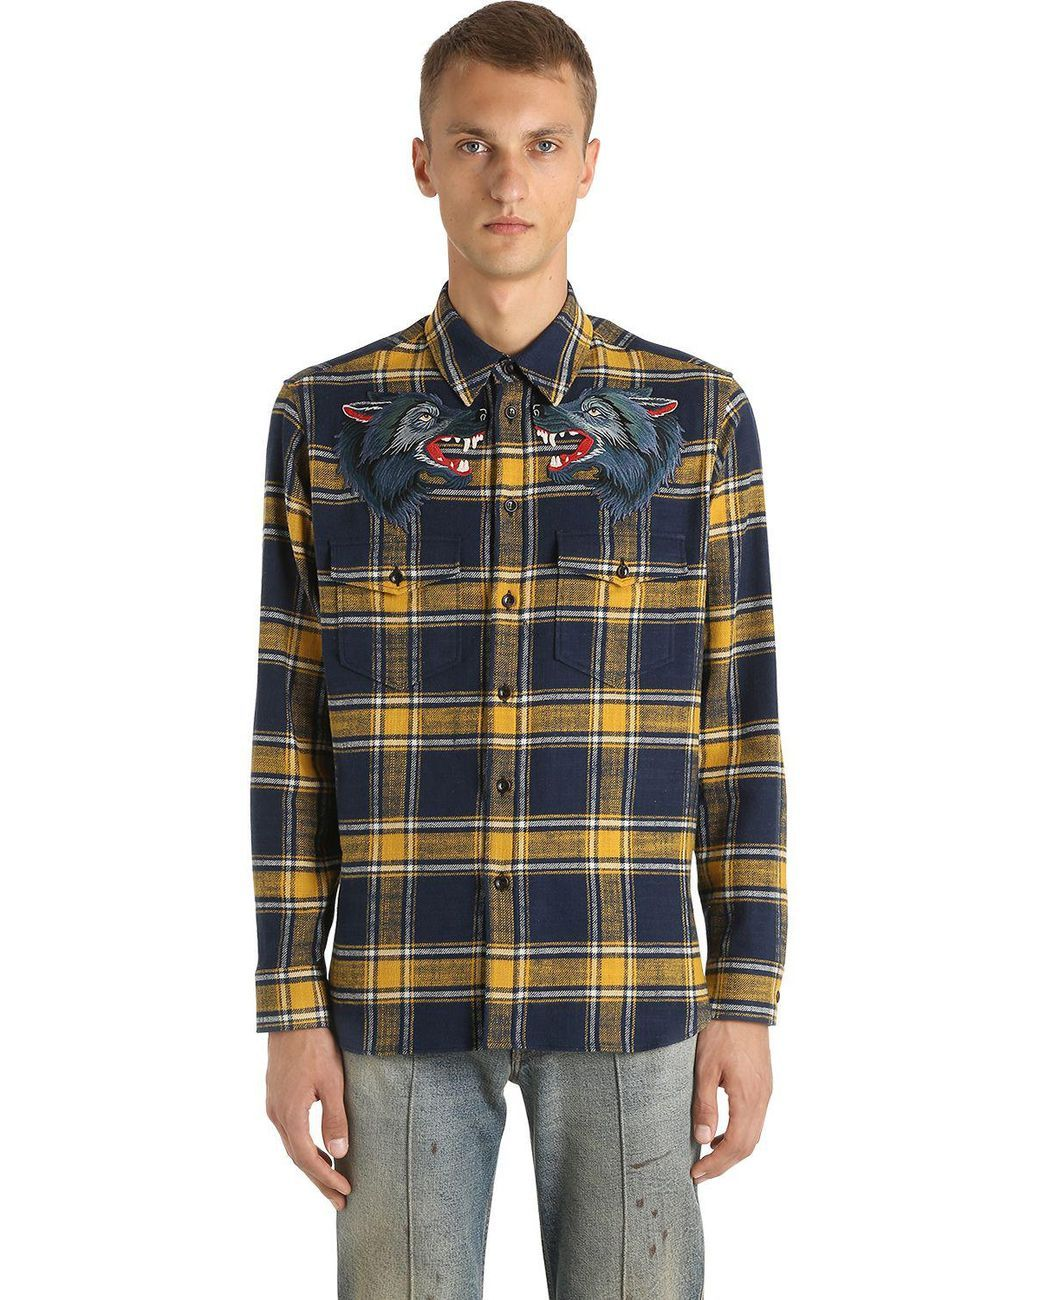 54c6b97c8 Men's Blue Patched Shirt | Fsshion | Mens flannel shirt, Shirts ...